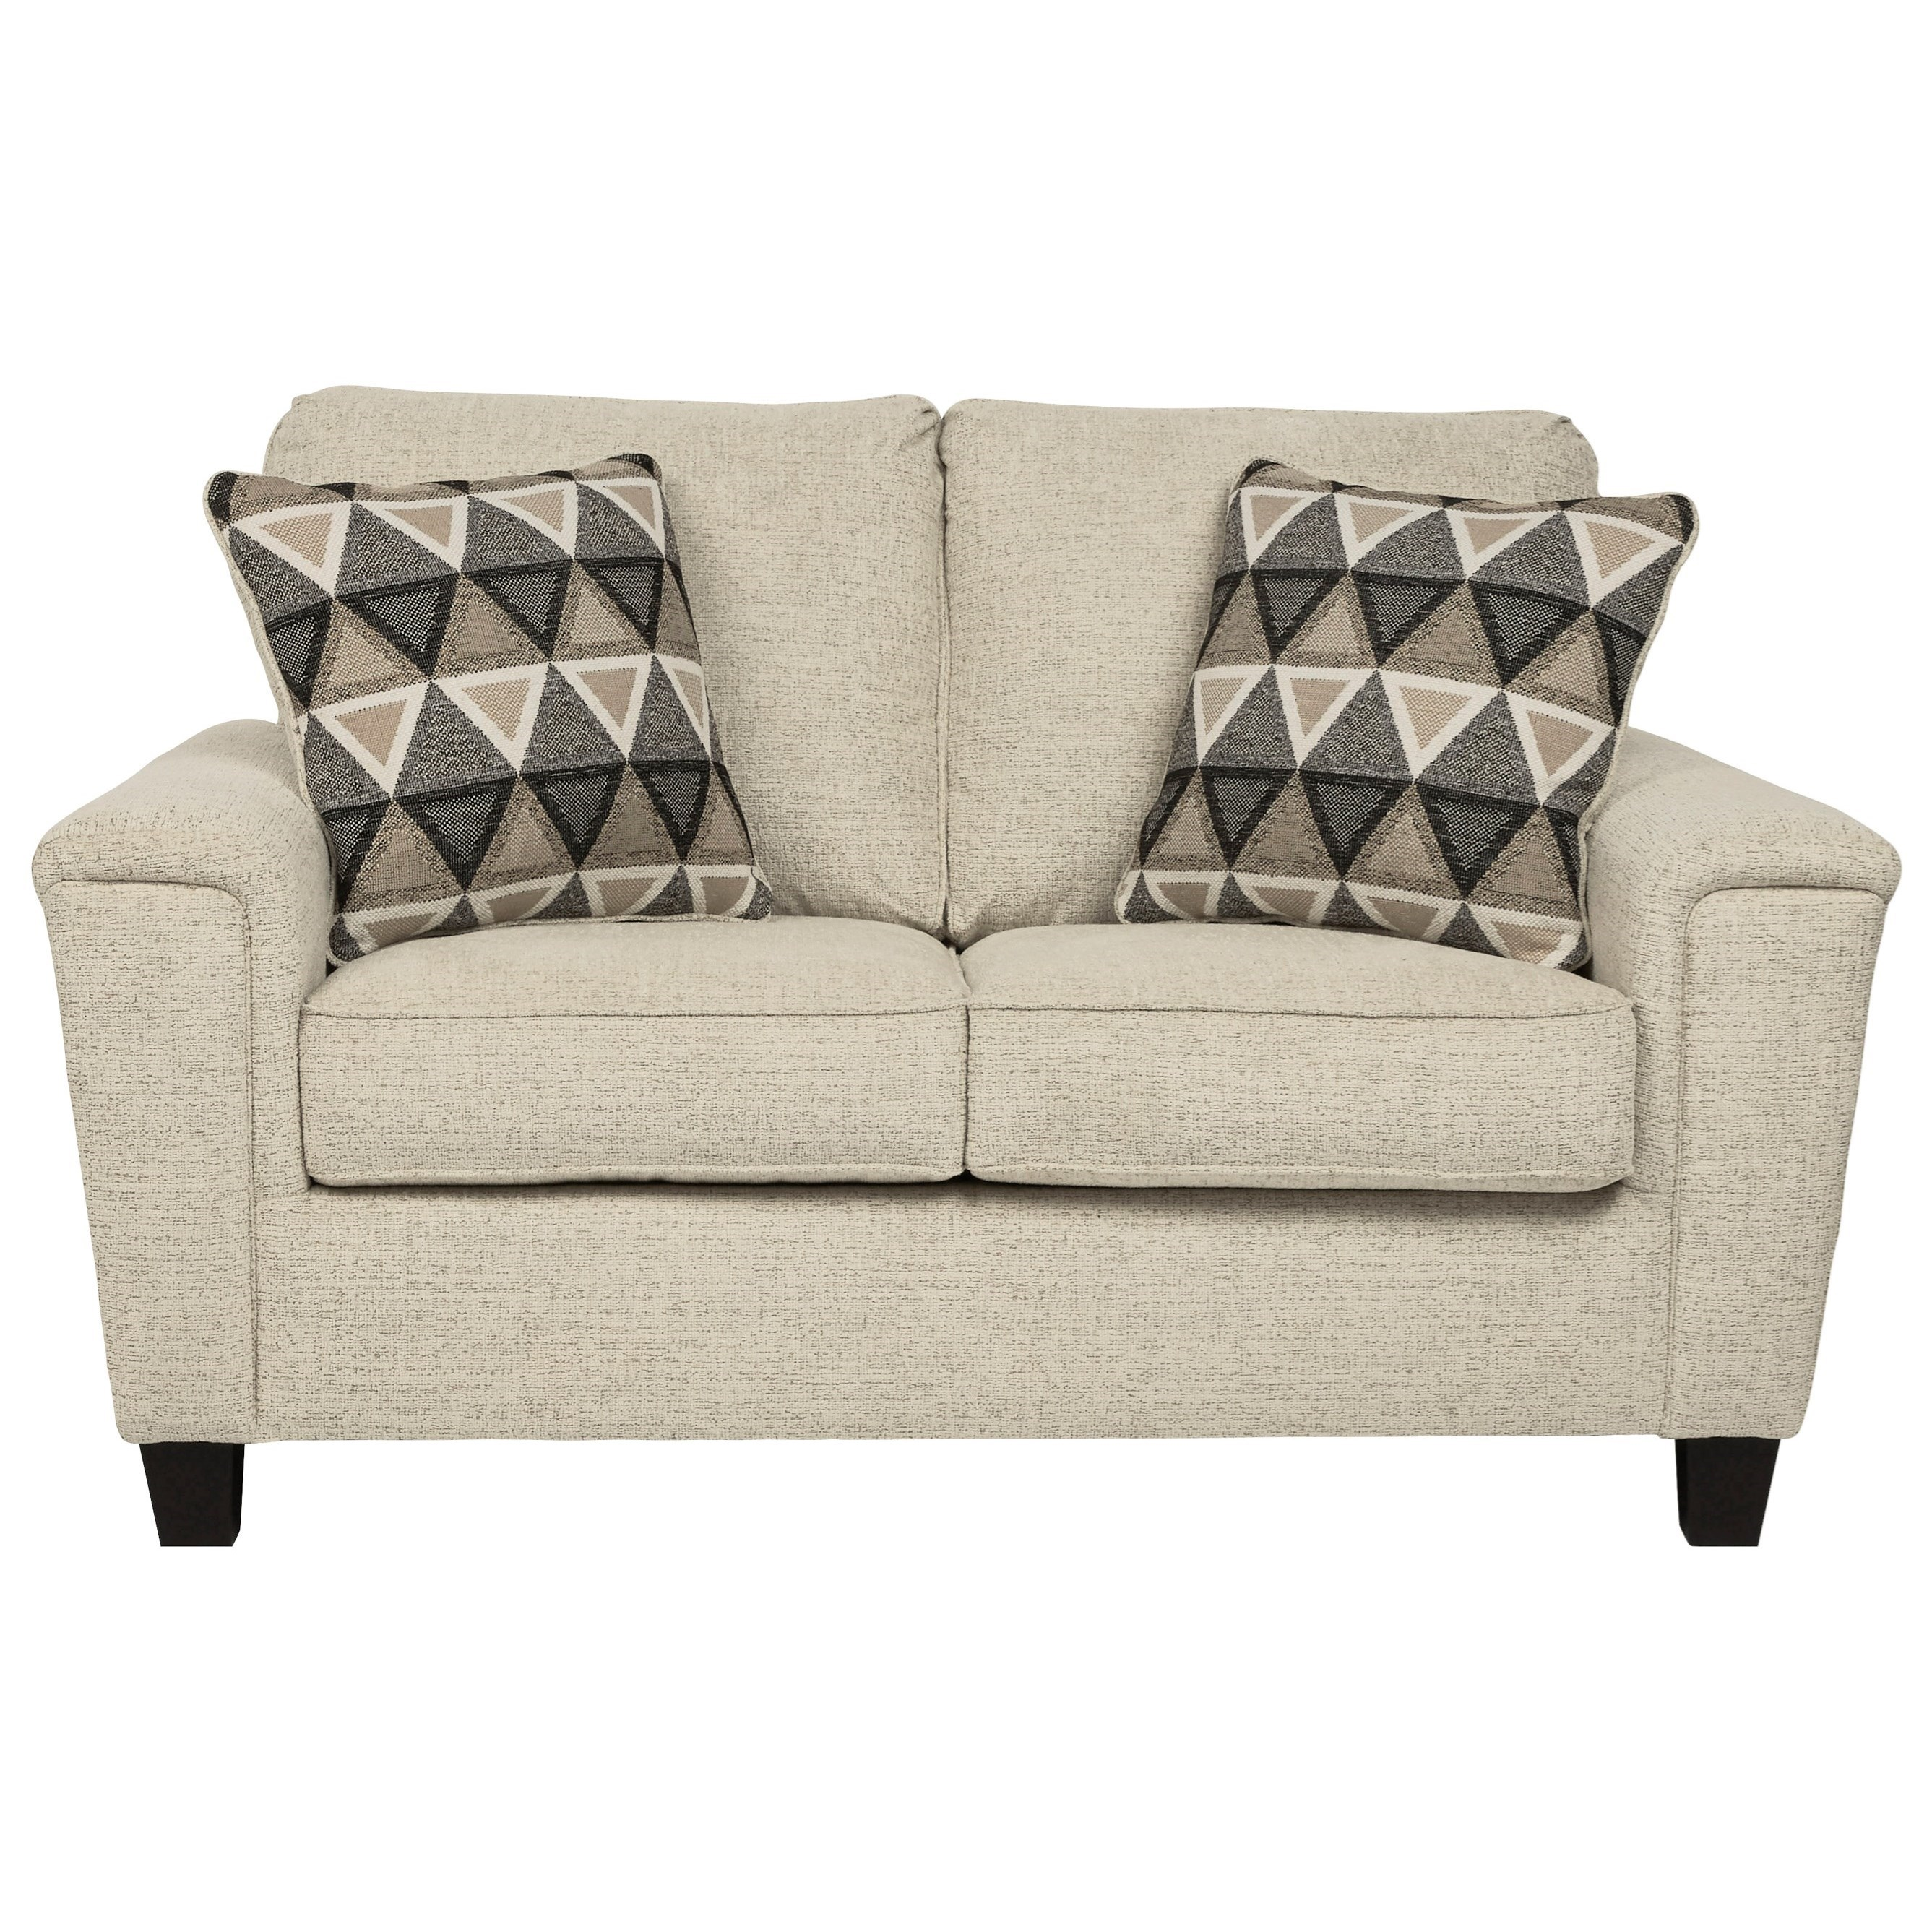 Abinger Loveseat by Signature Design by Ashley at Lynn's Furniture & Mattress